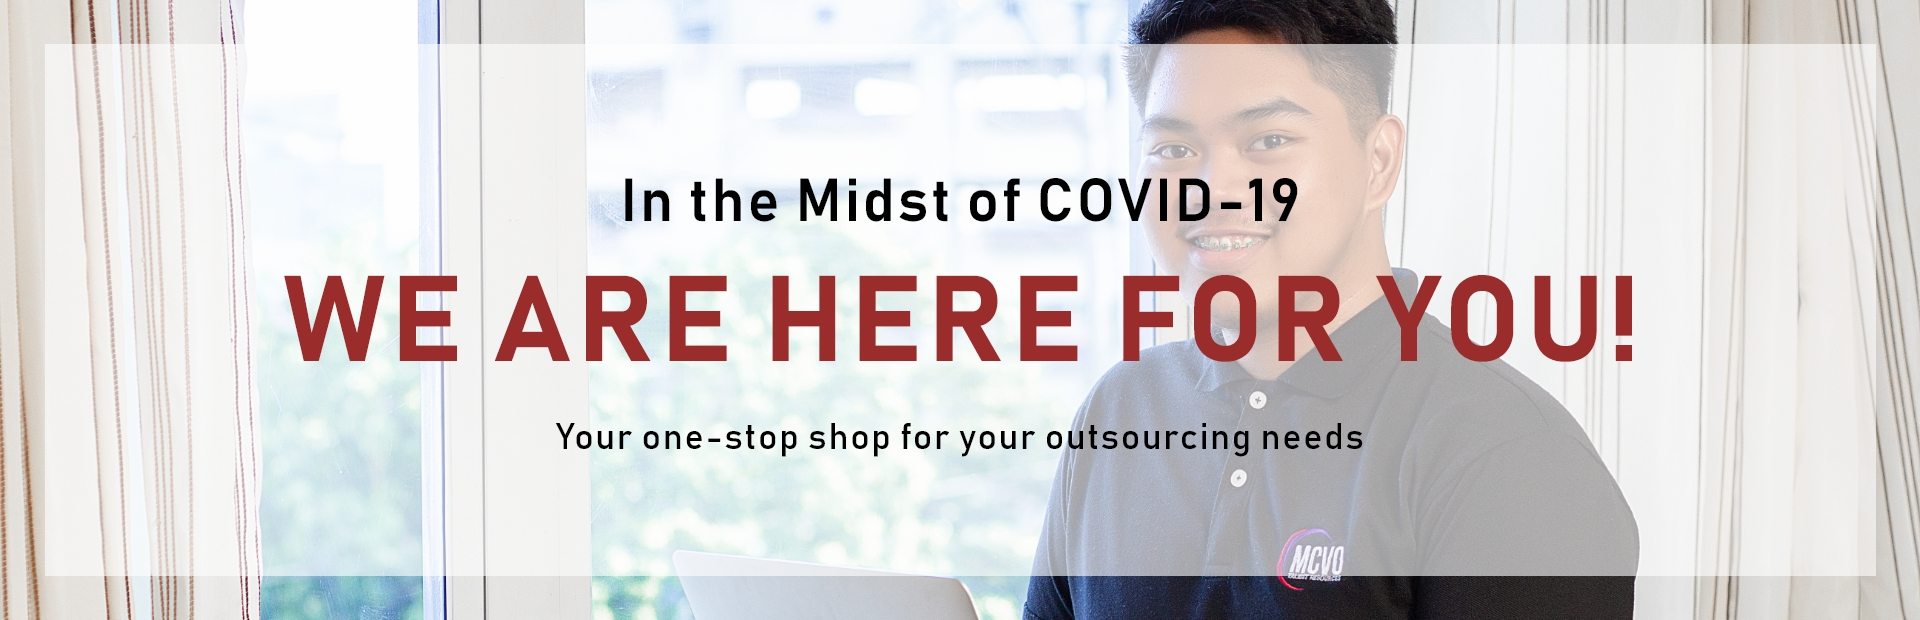 In the Midsr of COVID-19, we are here for you!